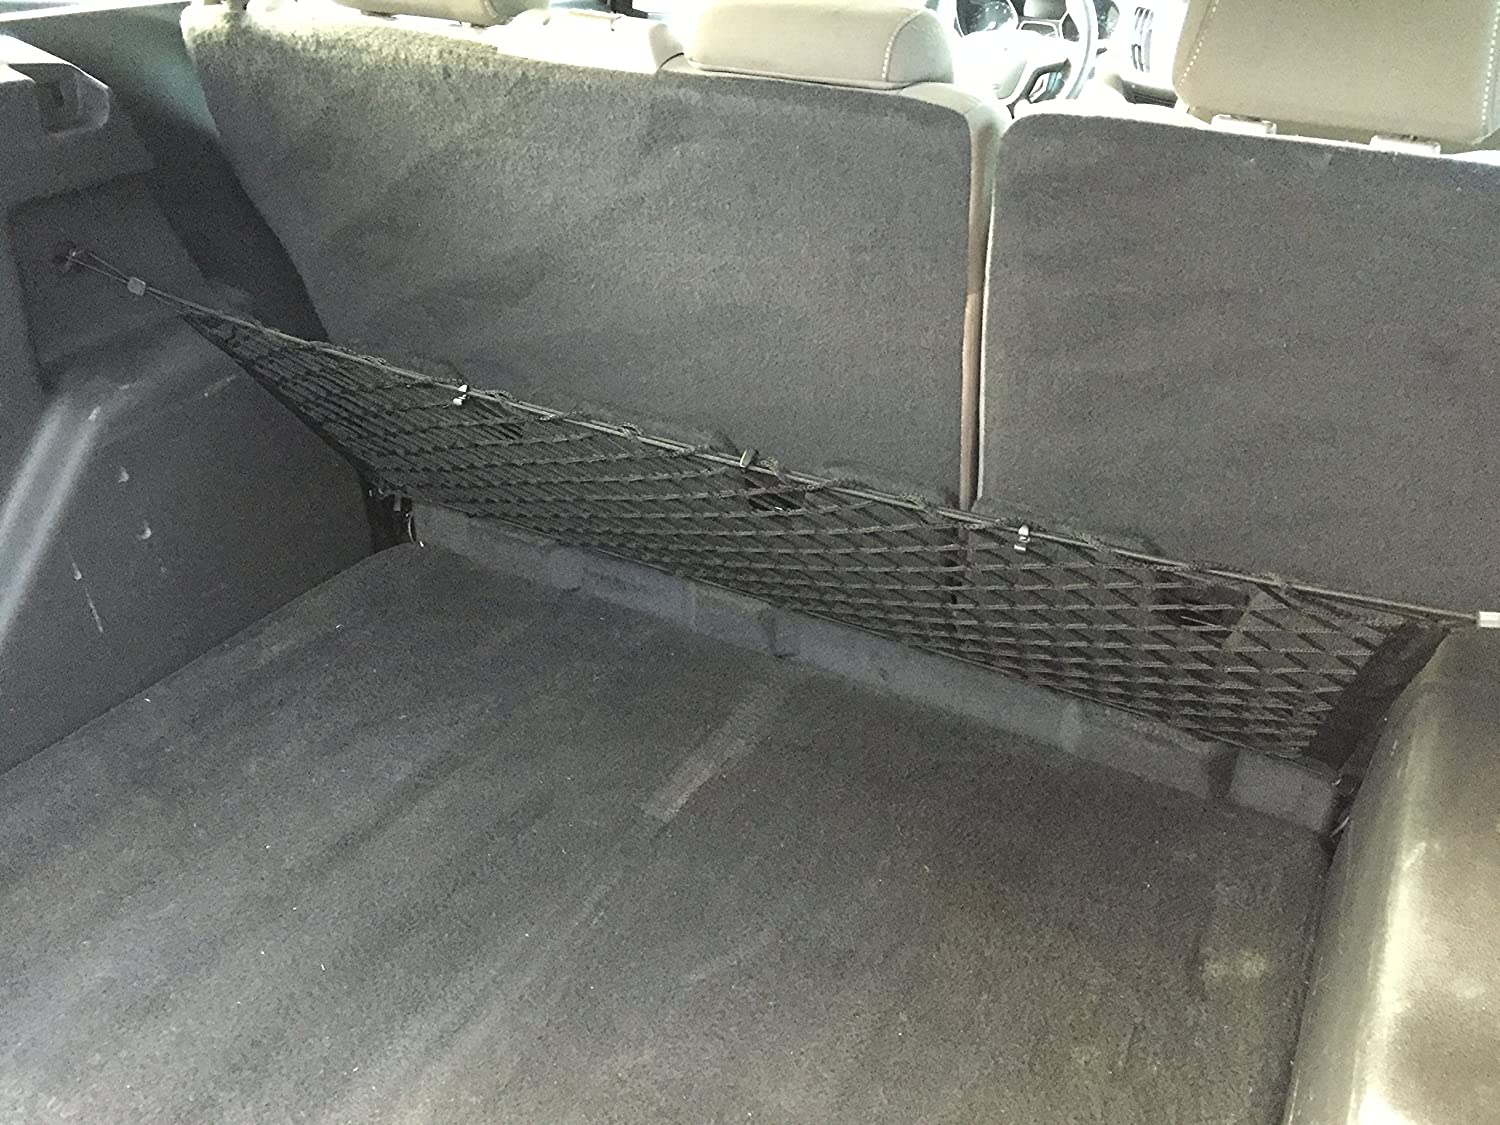 Cargo Net Envelope Style Trunk Storage Organizer Net for 2013-2017 Ford Fusion